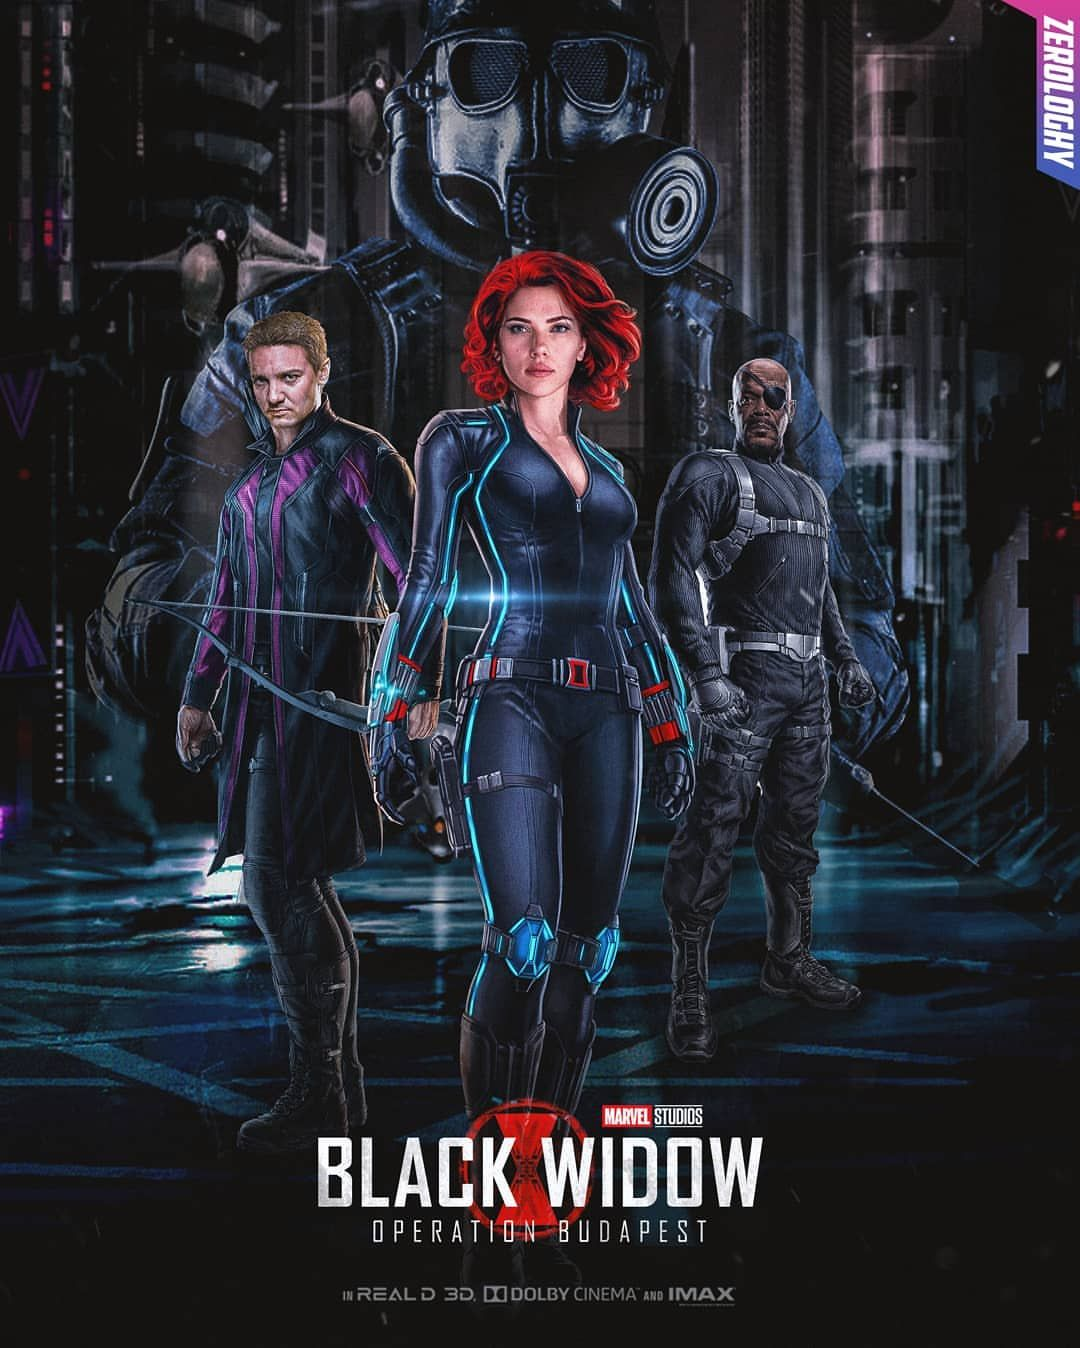 Black Widow Operation Budapest Coming 2020 Follow Zerologhy For More Blackwidow Avengers Ironman Mar Black Widow Movie Black Widow Black Widow Marvel